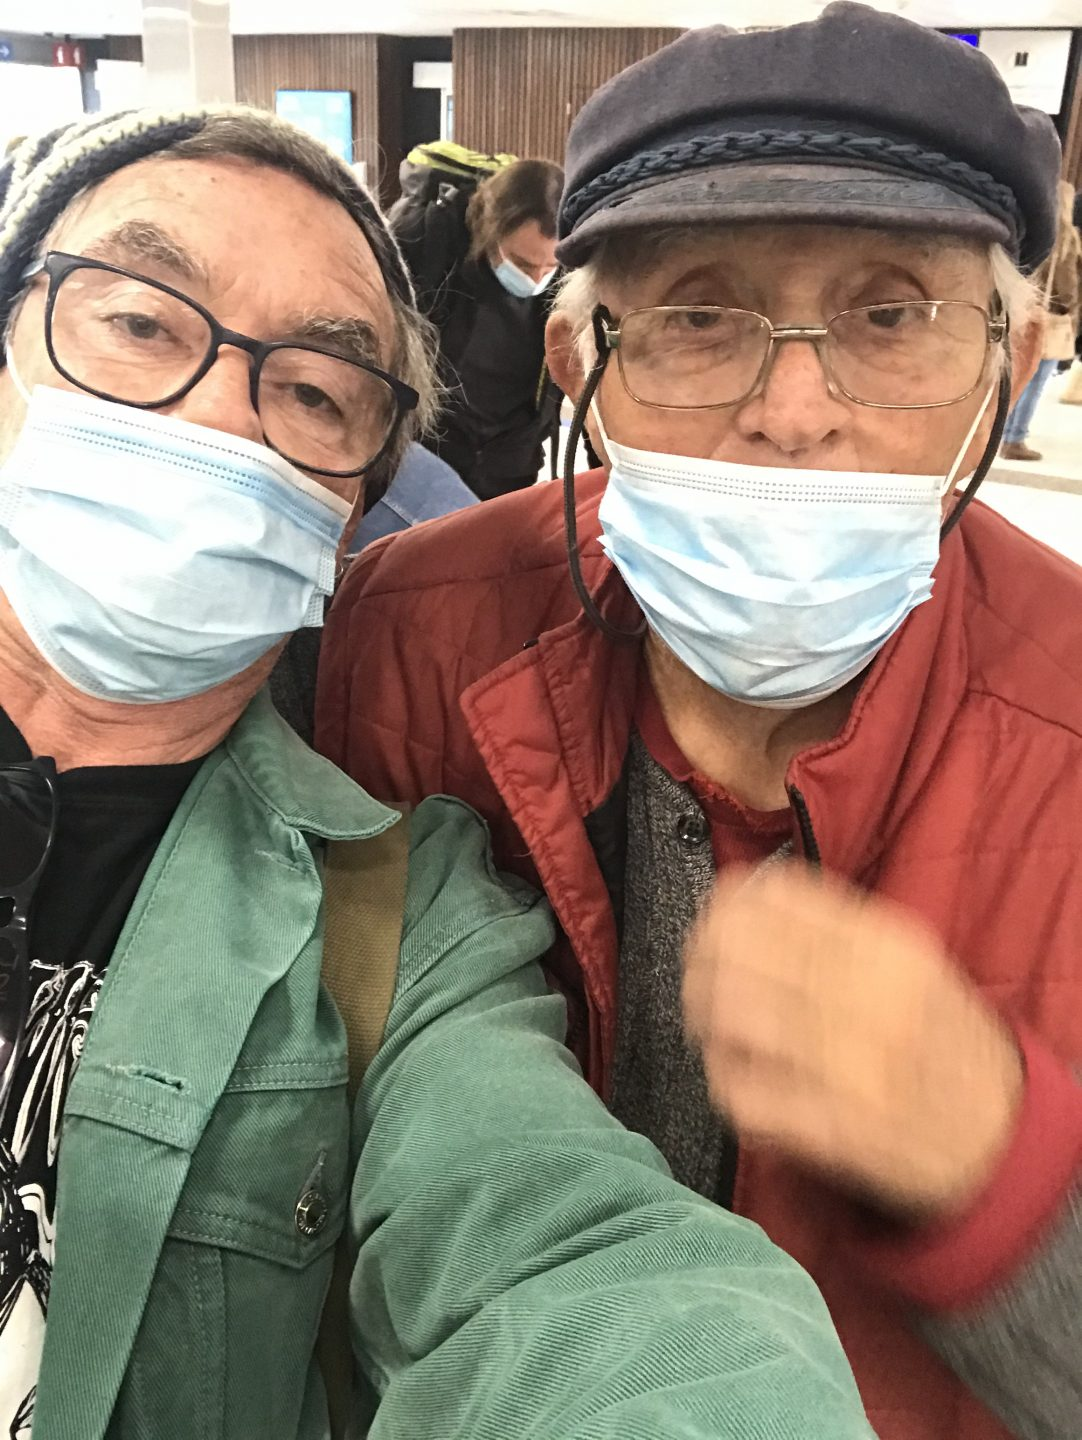 Two caucasian men, both wearing blue surgical masks. A selfie. Both are wearing hats. One has black glasses and a green jacket. The other silver glasses and a red jacket.